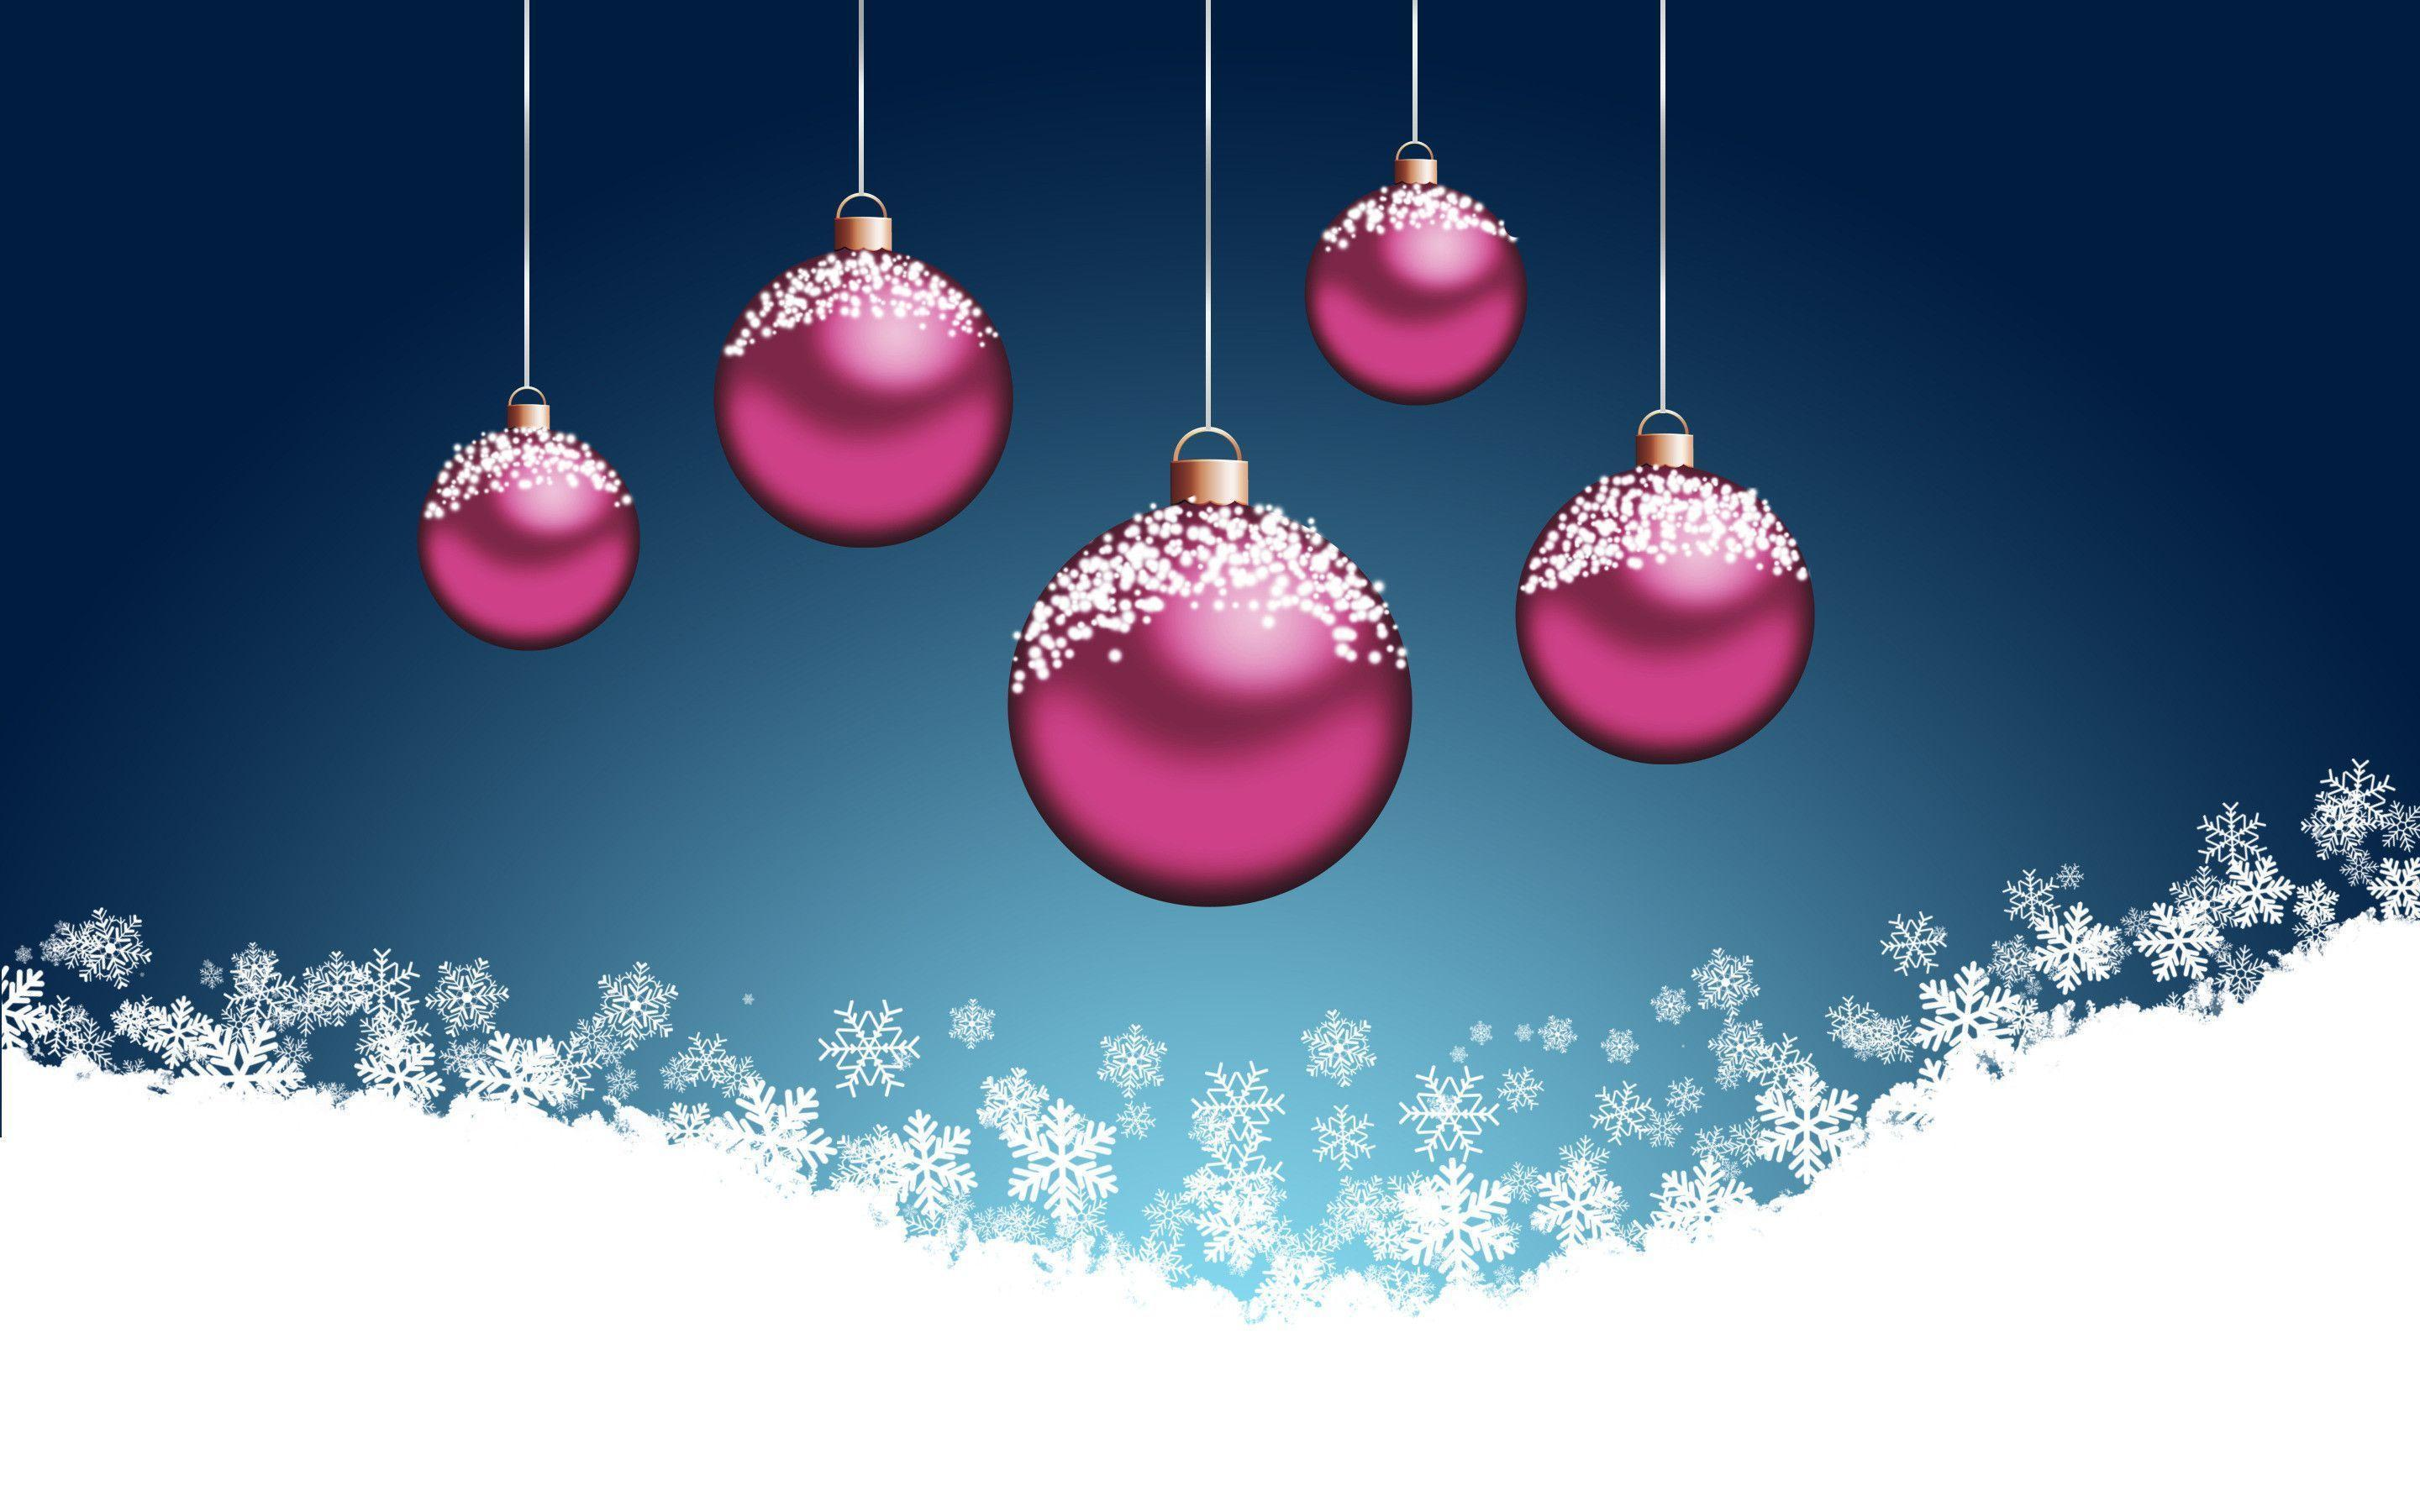 Christmas Ornaments Wallpapers - Full HD wallpaper search